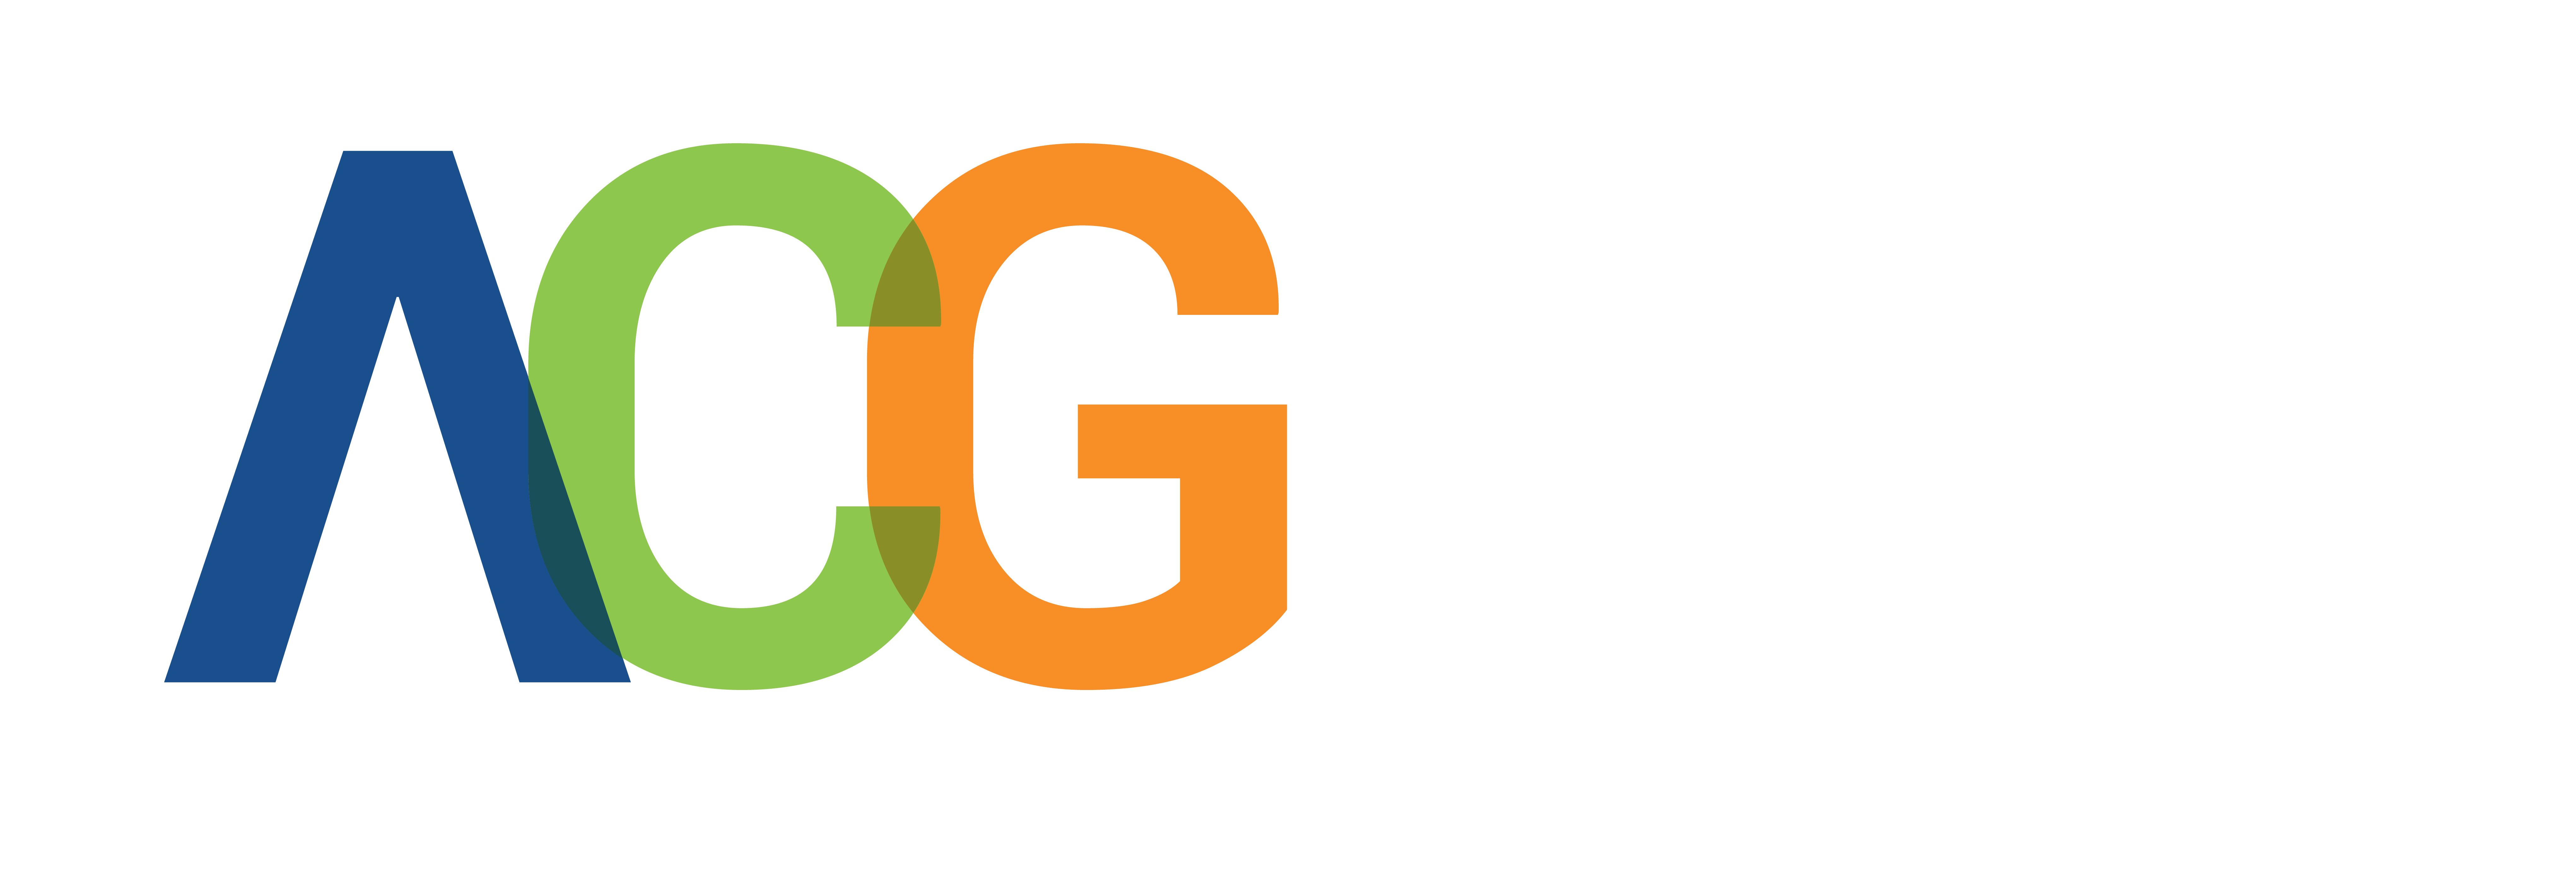 AccSoft Consulting Group